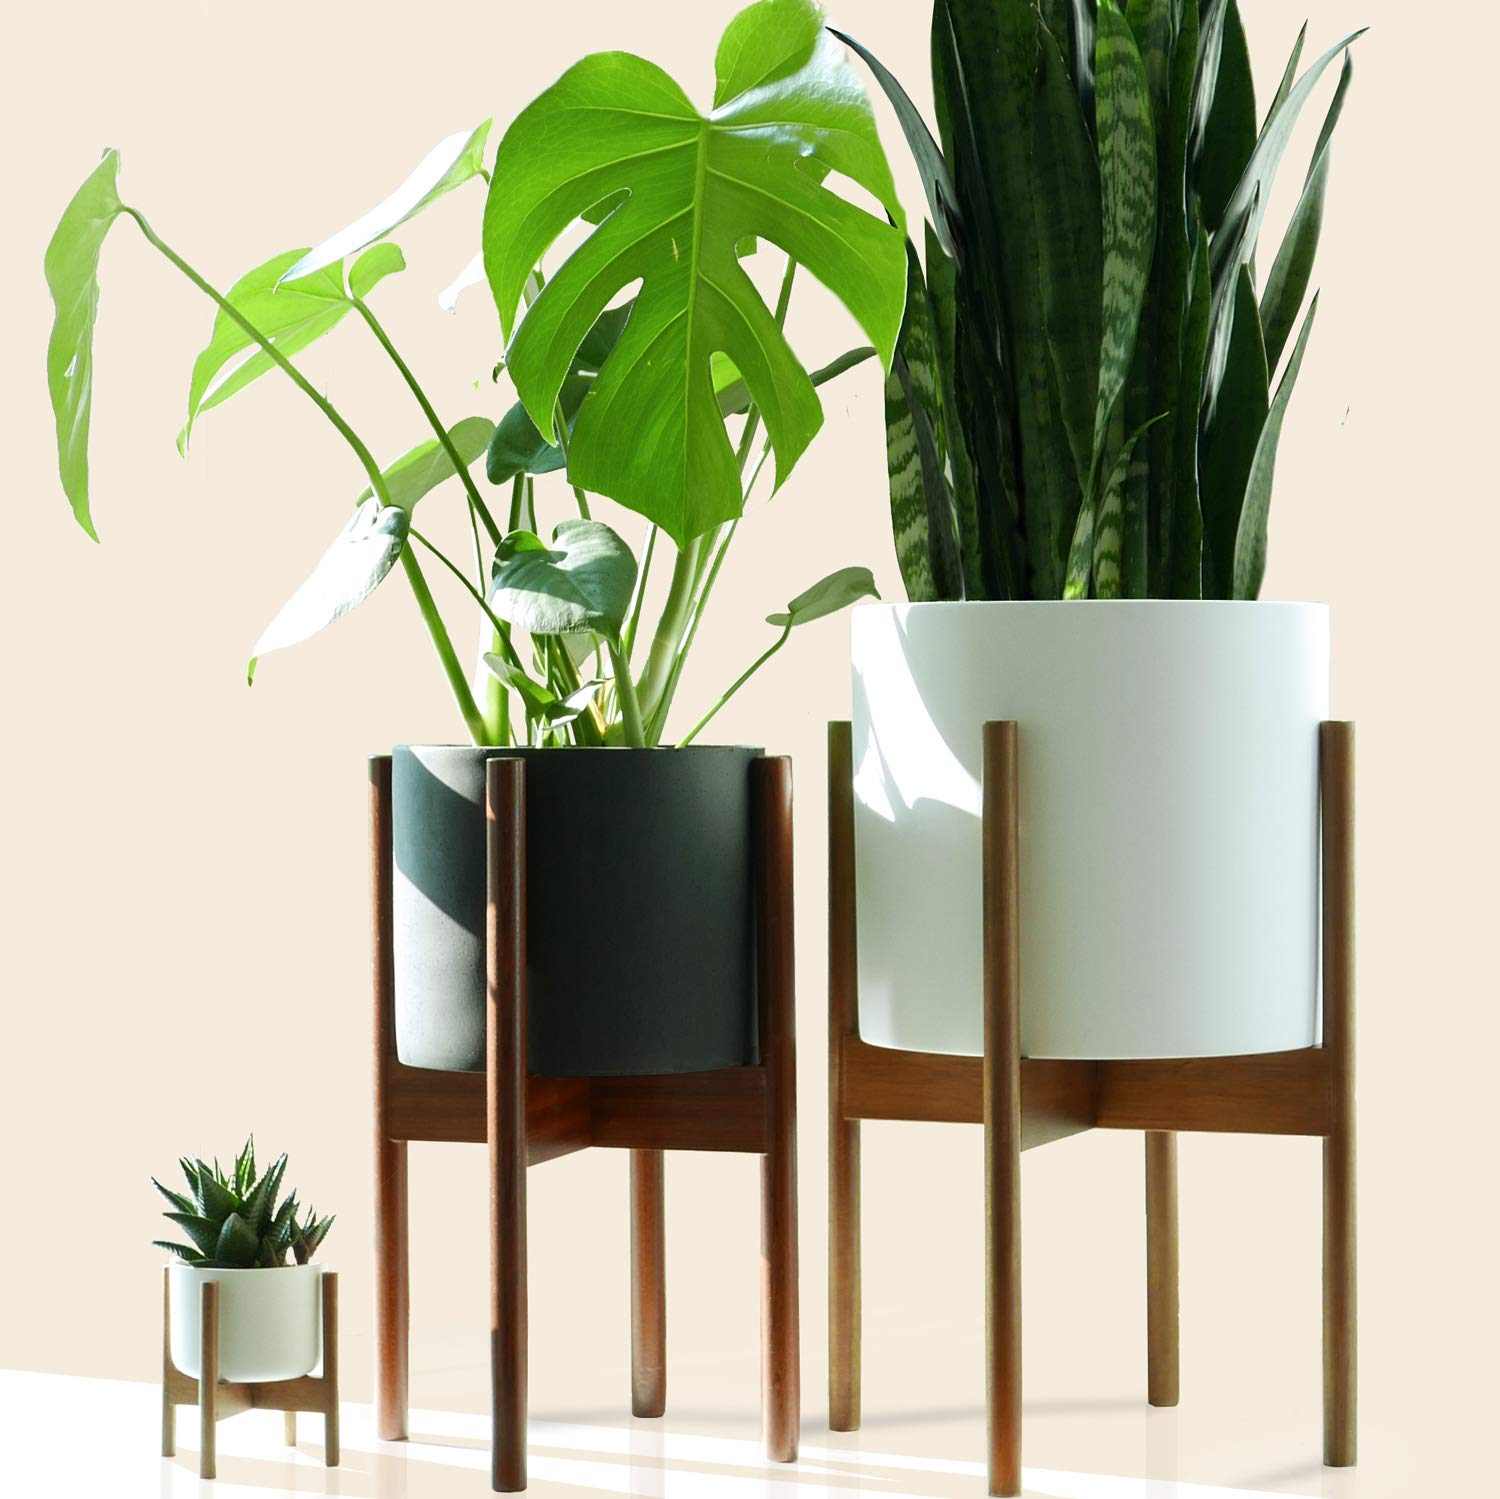 Fox & Fern Mid Century Plant Stand Indoor - Acacia - EXCLUDING 10'' Ceramic Pot - Fits Snake Plant by Fox & Fern